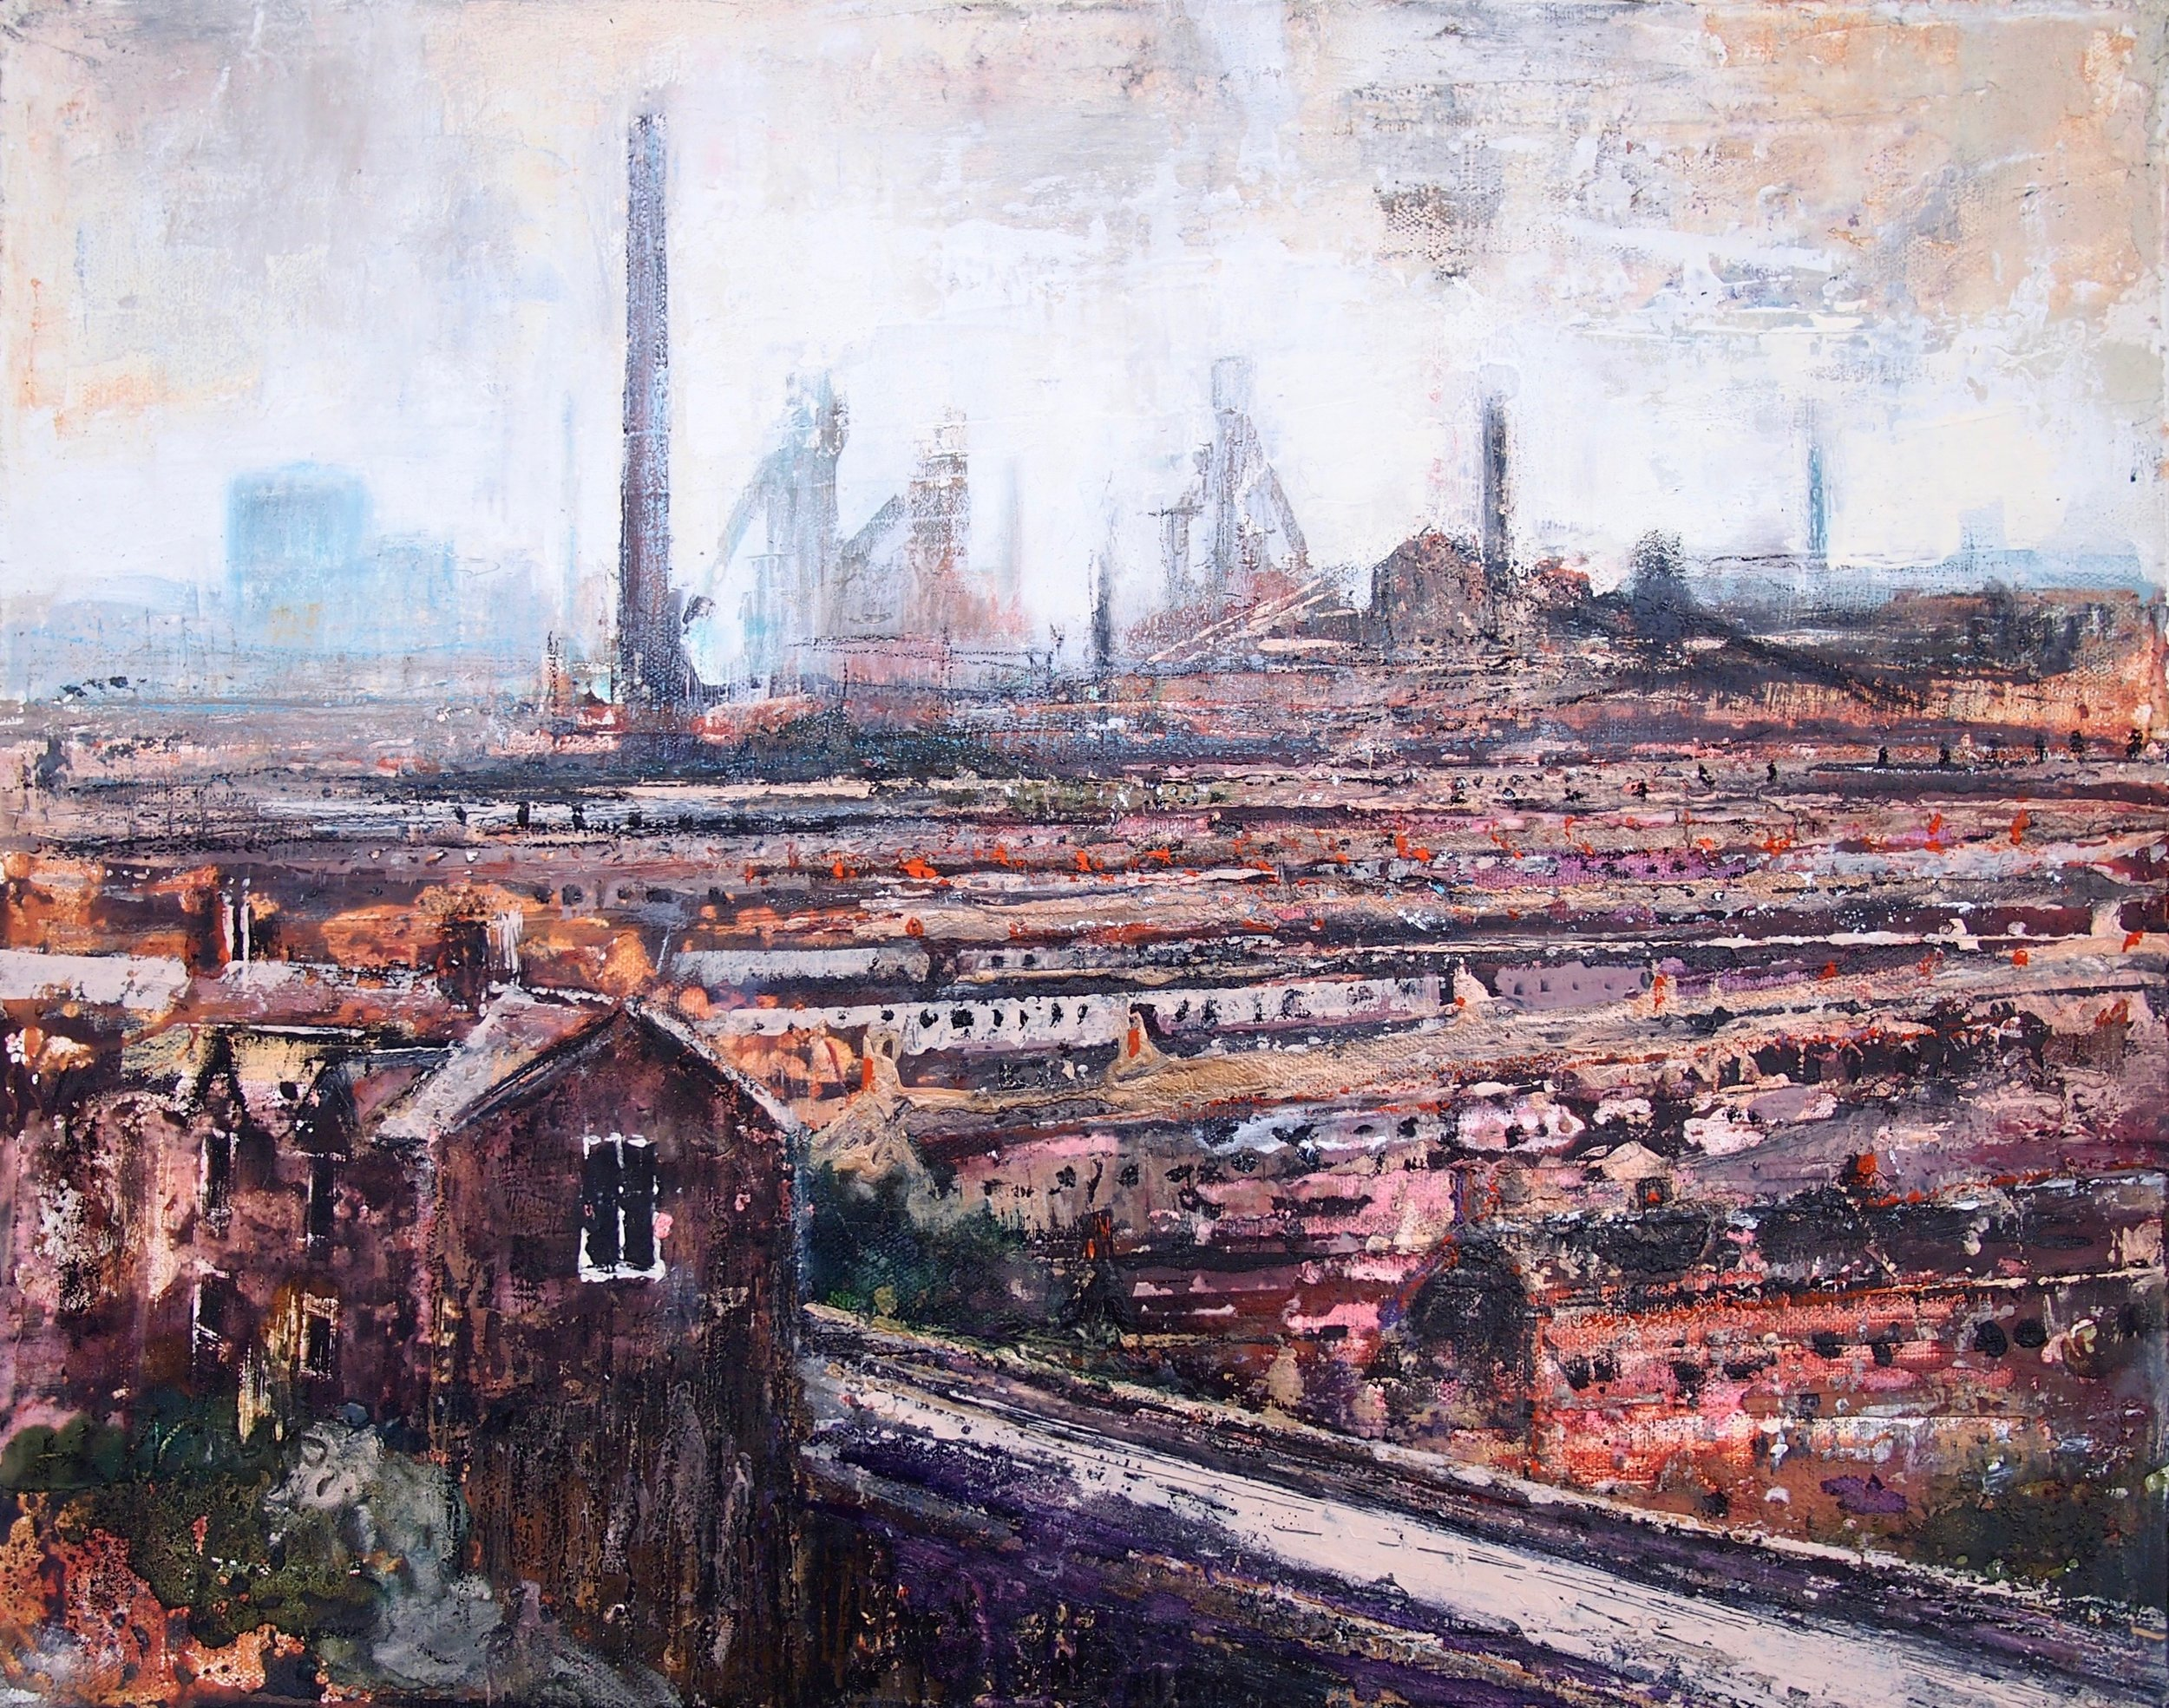 Chimneys 2 - Port Talbot 50 x 60 cm